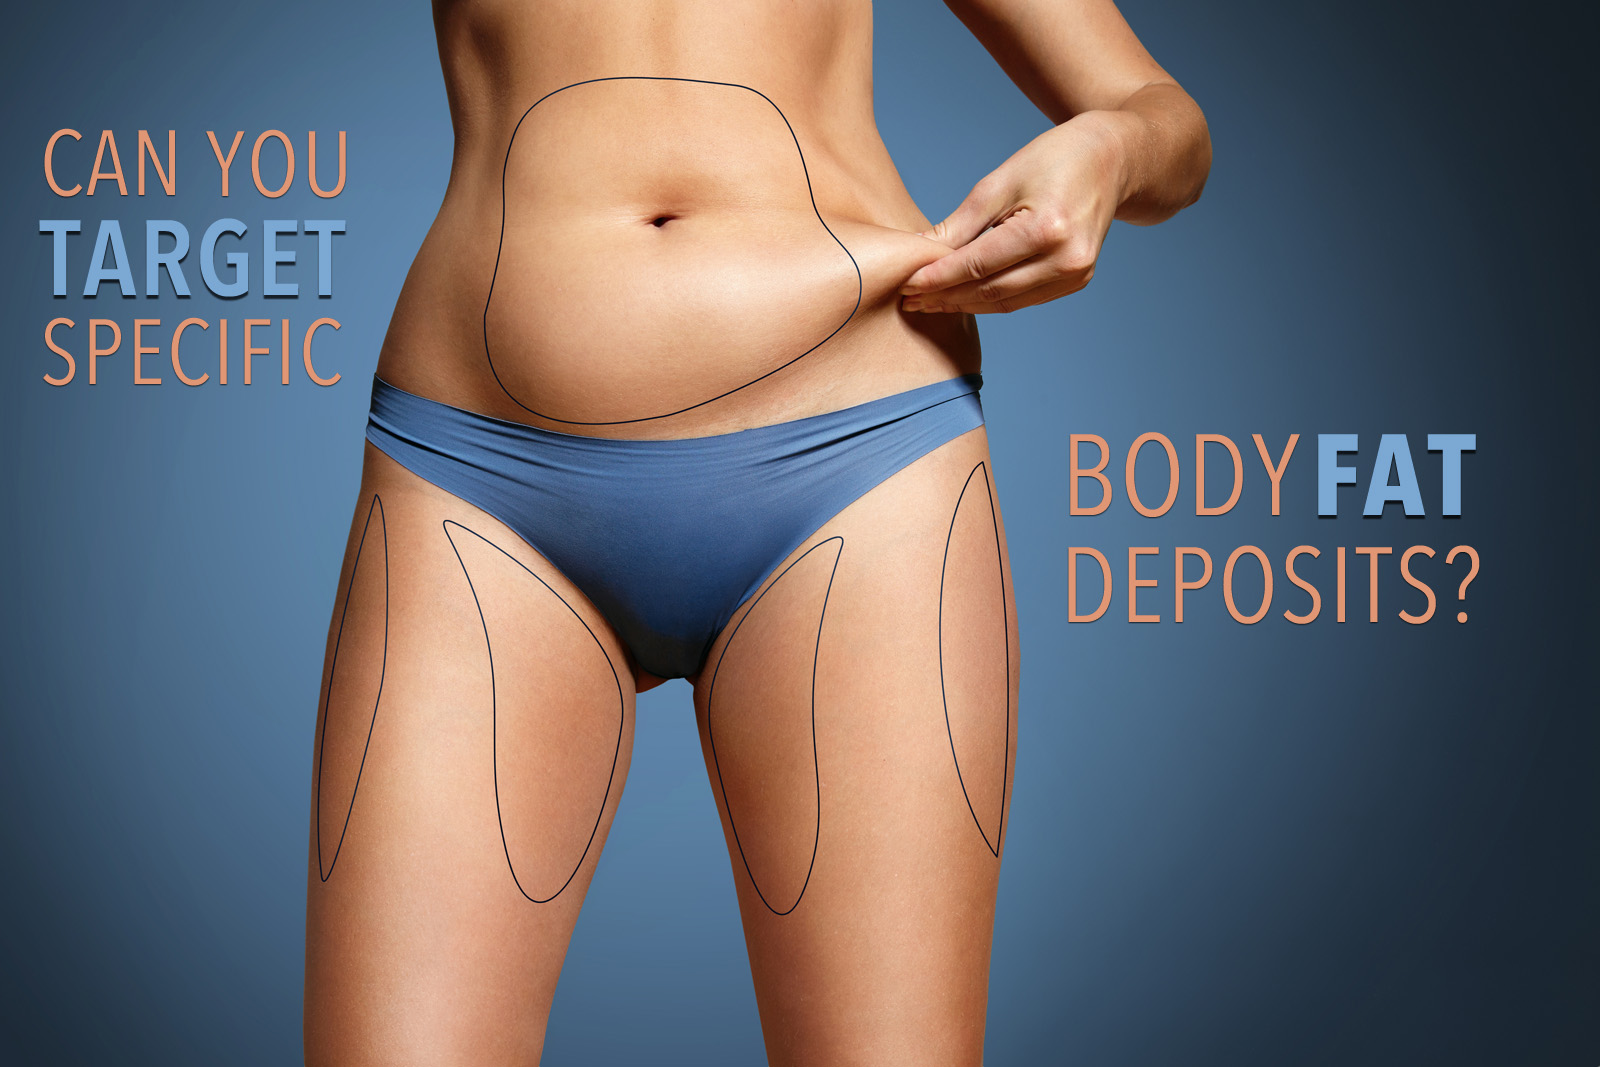 Can you spot target specific body fat deposits?